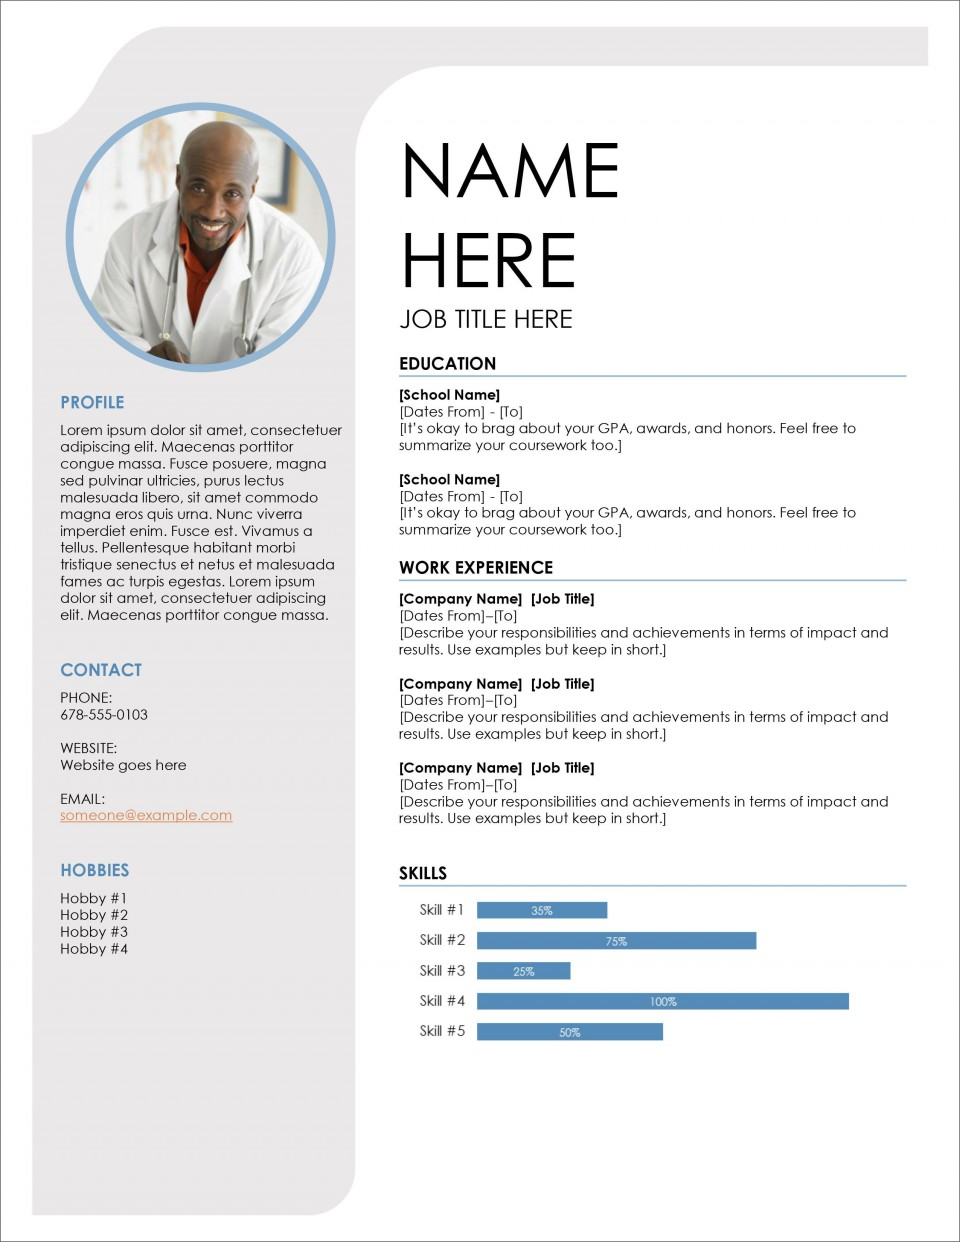 006 Unusual Microsoft Word Template Download High Definition  2010 Resume Free 2007 Error Invoice960